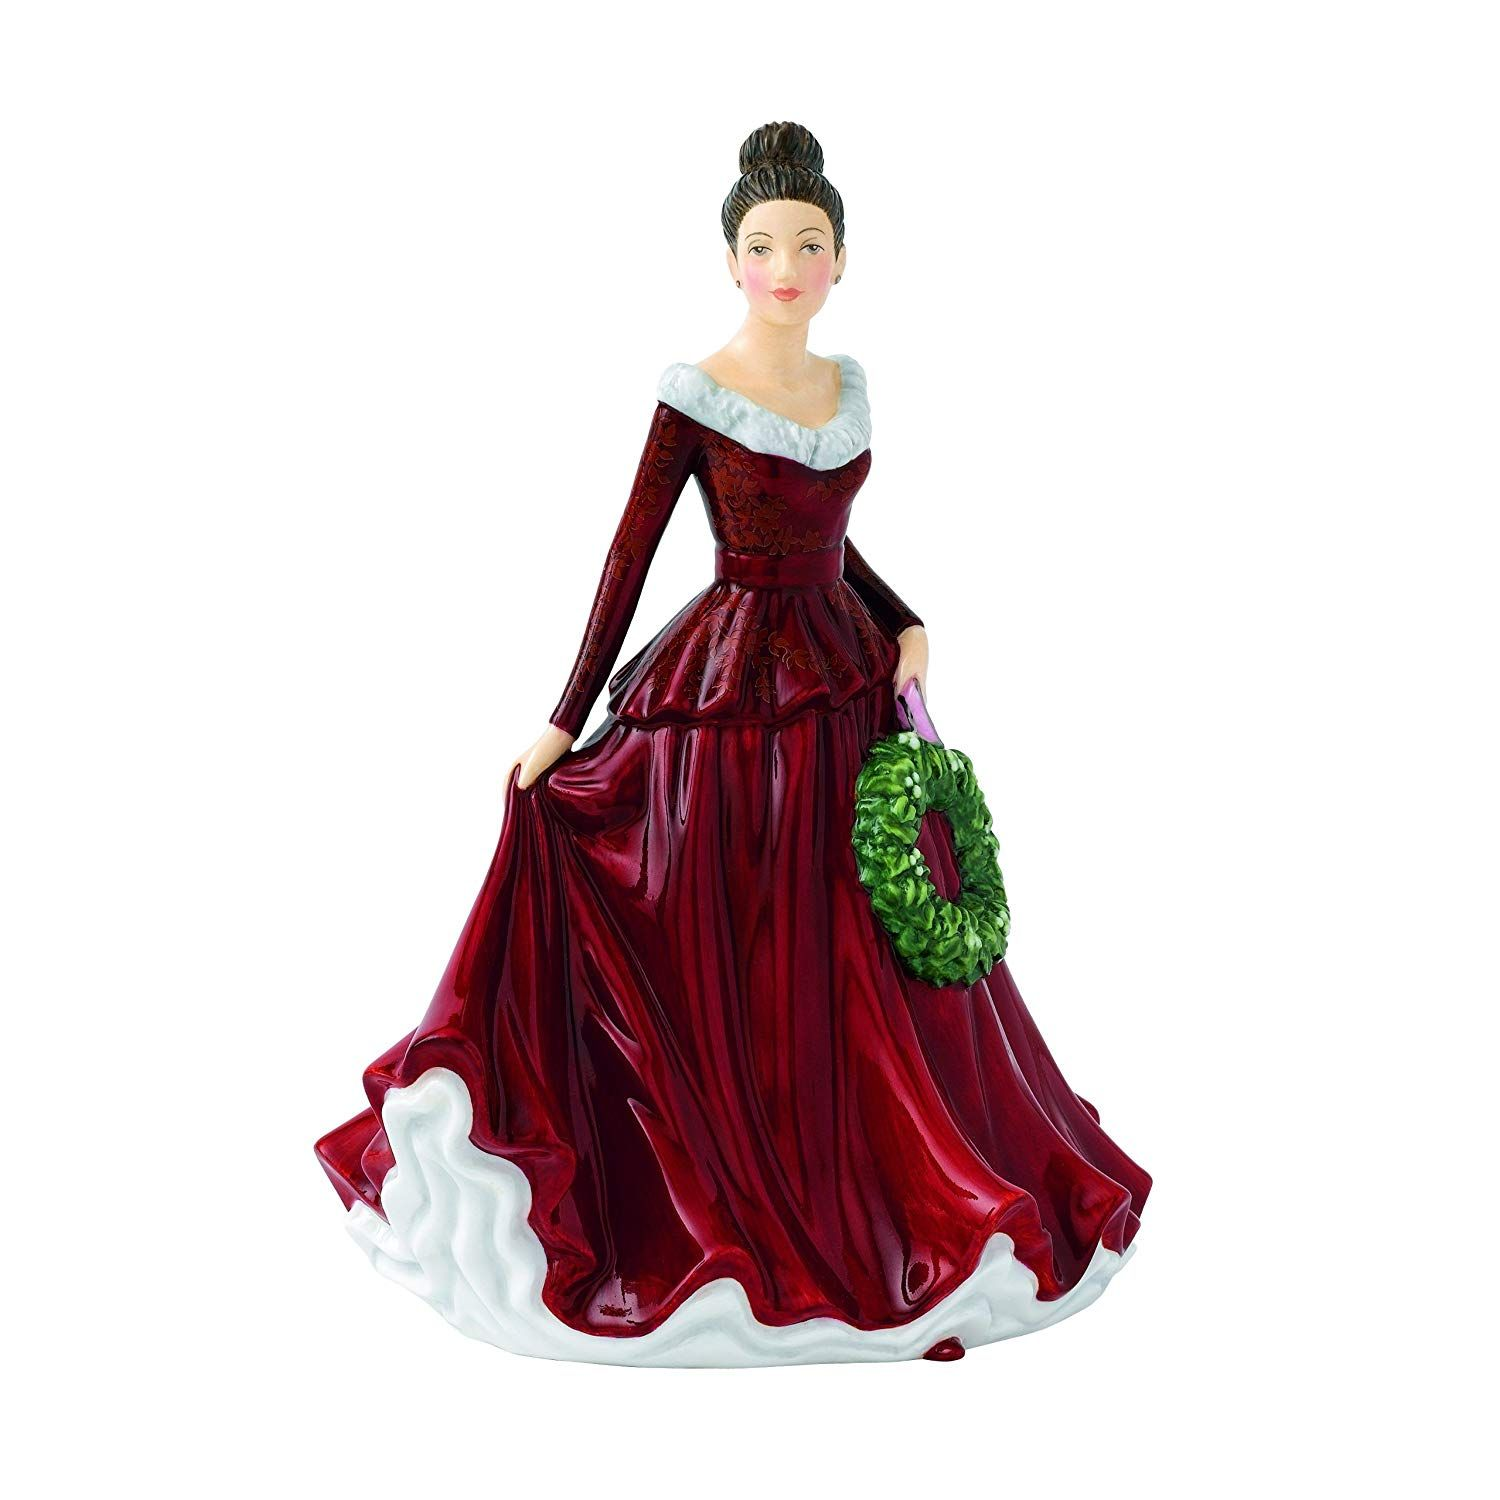 Royal Doulton Songs Of Christmas Phase 2 Mistletoe And Wine Figurine Click Image For More Details T Royal Doulton Royal Doulton China Christmas Figurines